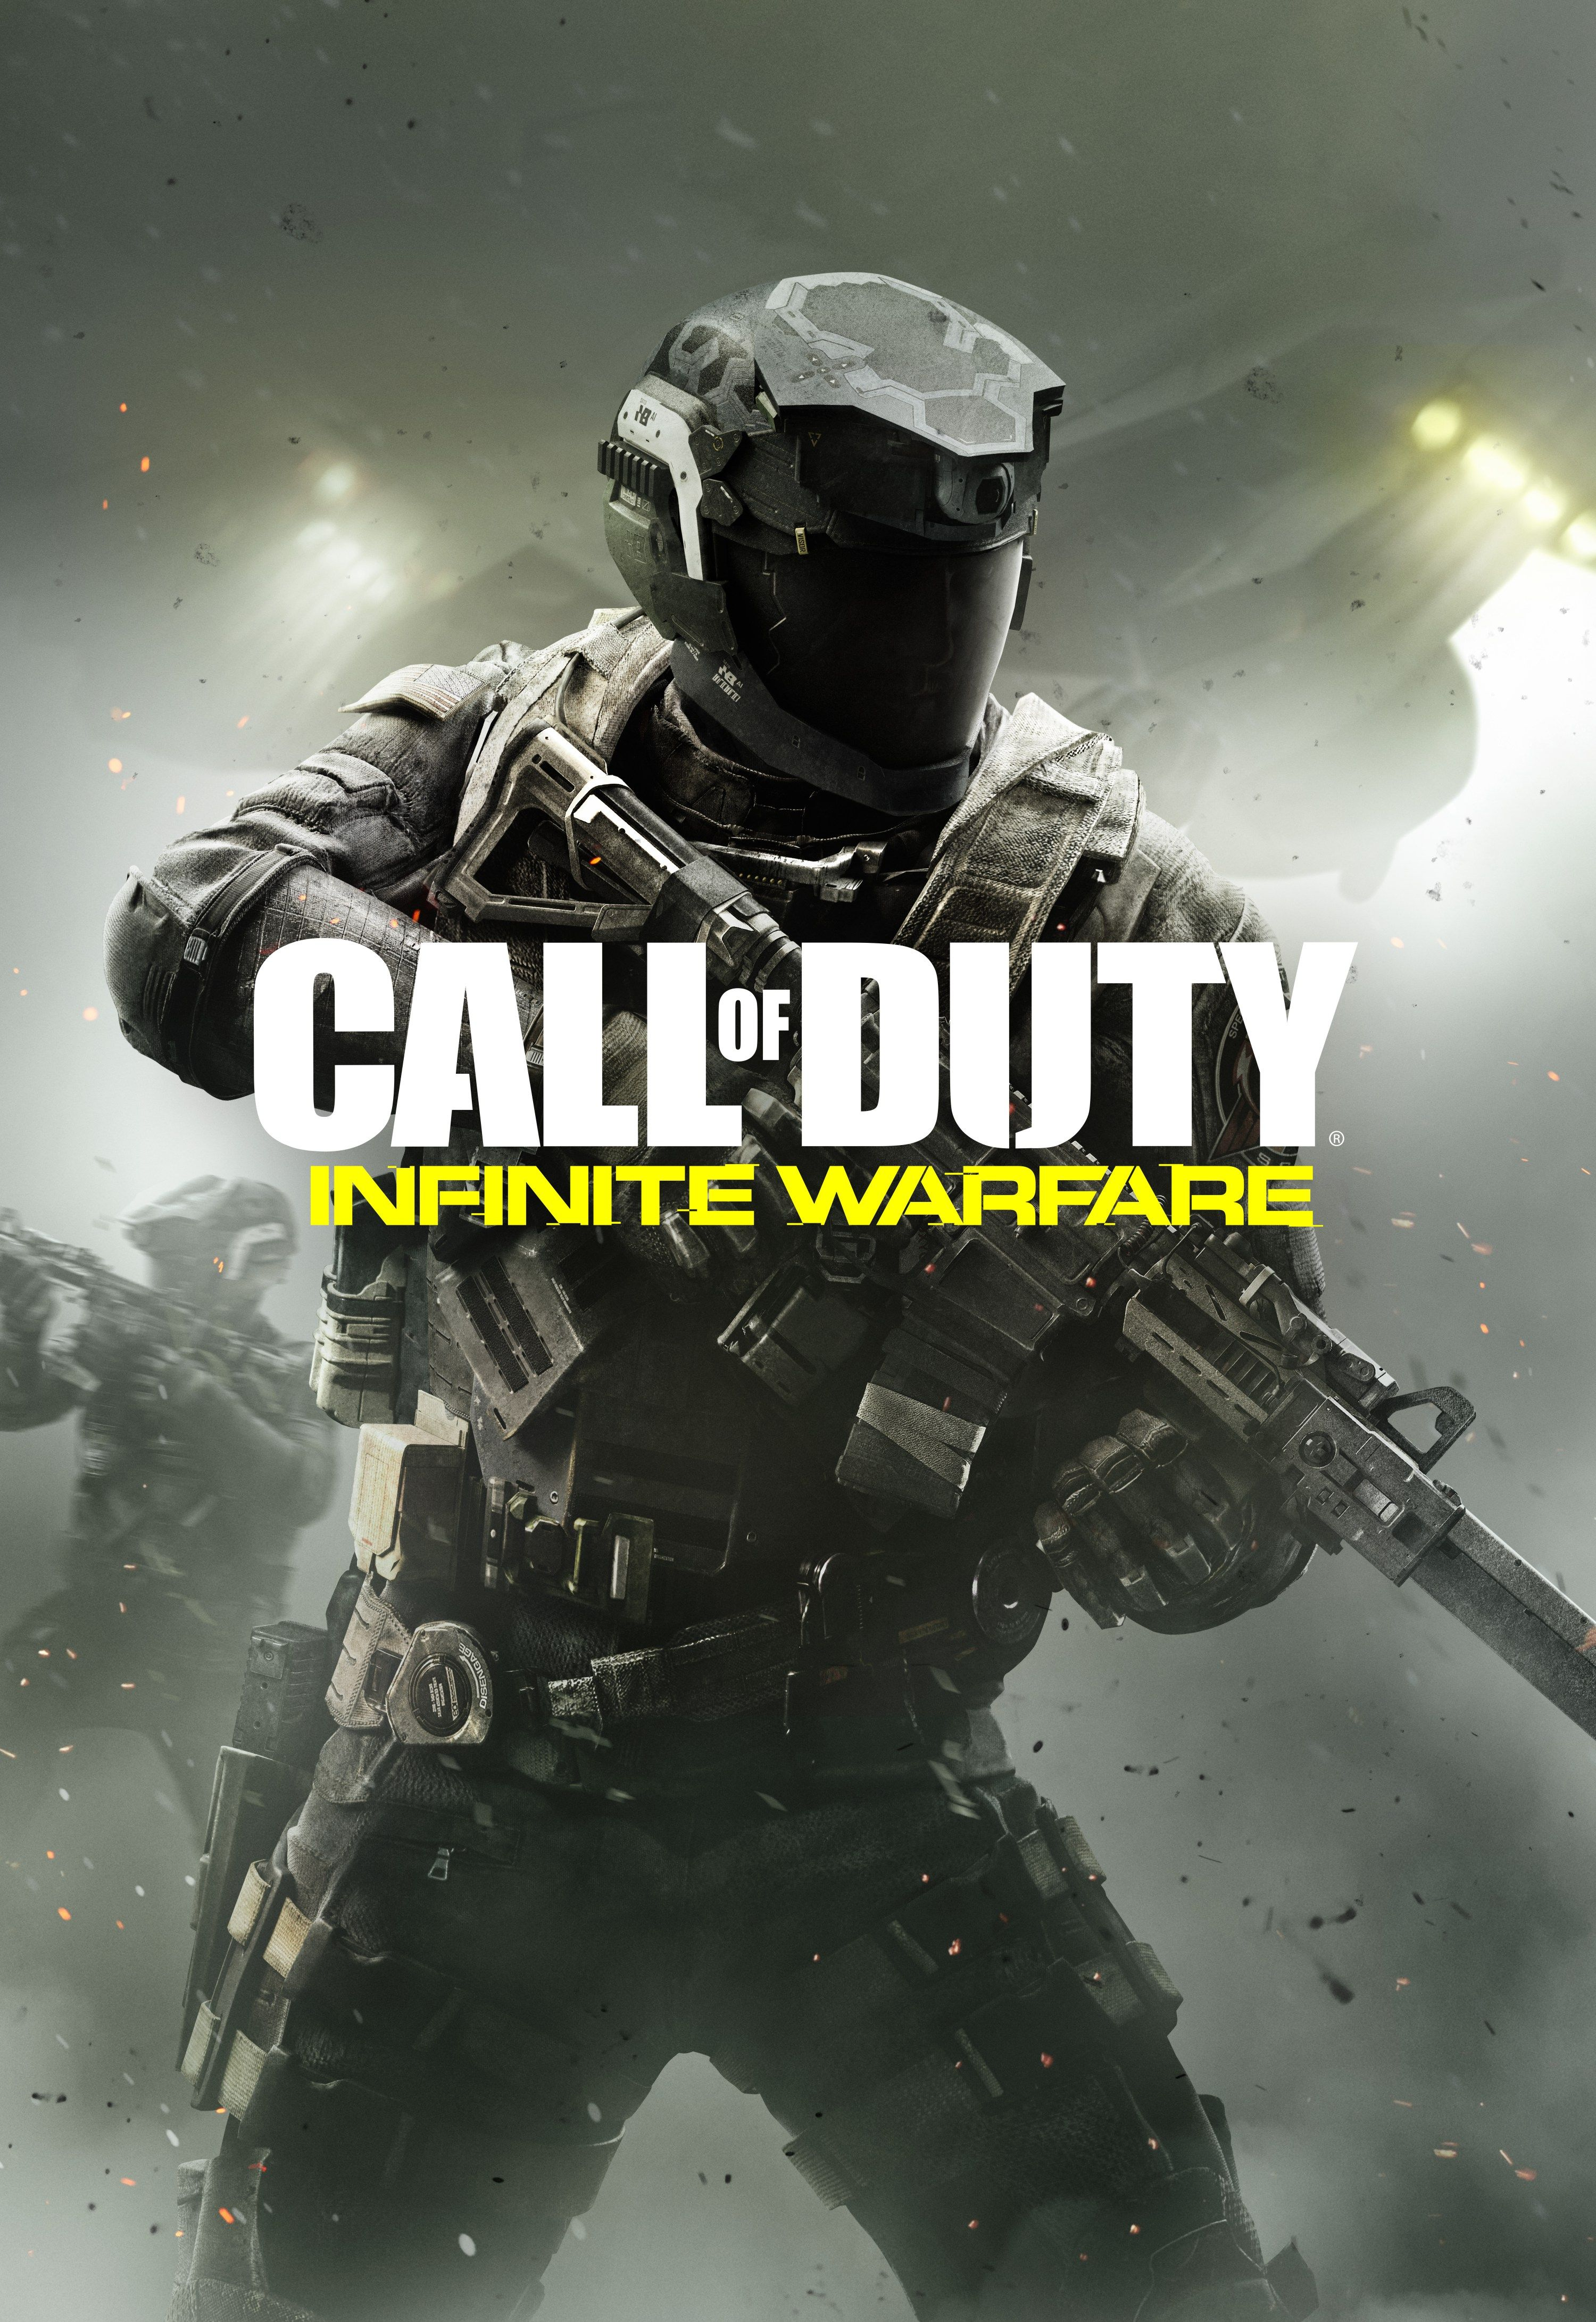 Call Of Duty Infinite Warfare Gift Guide With Images Call Of